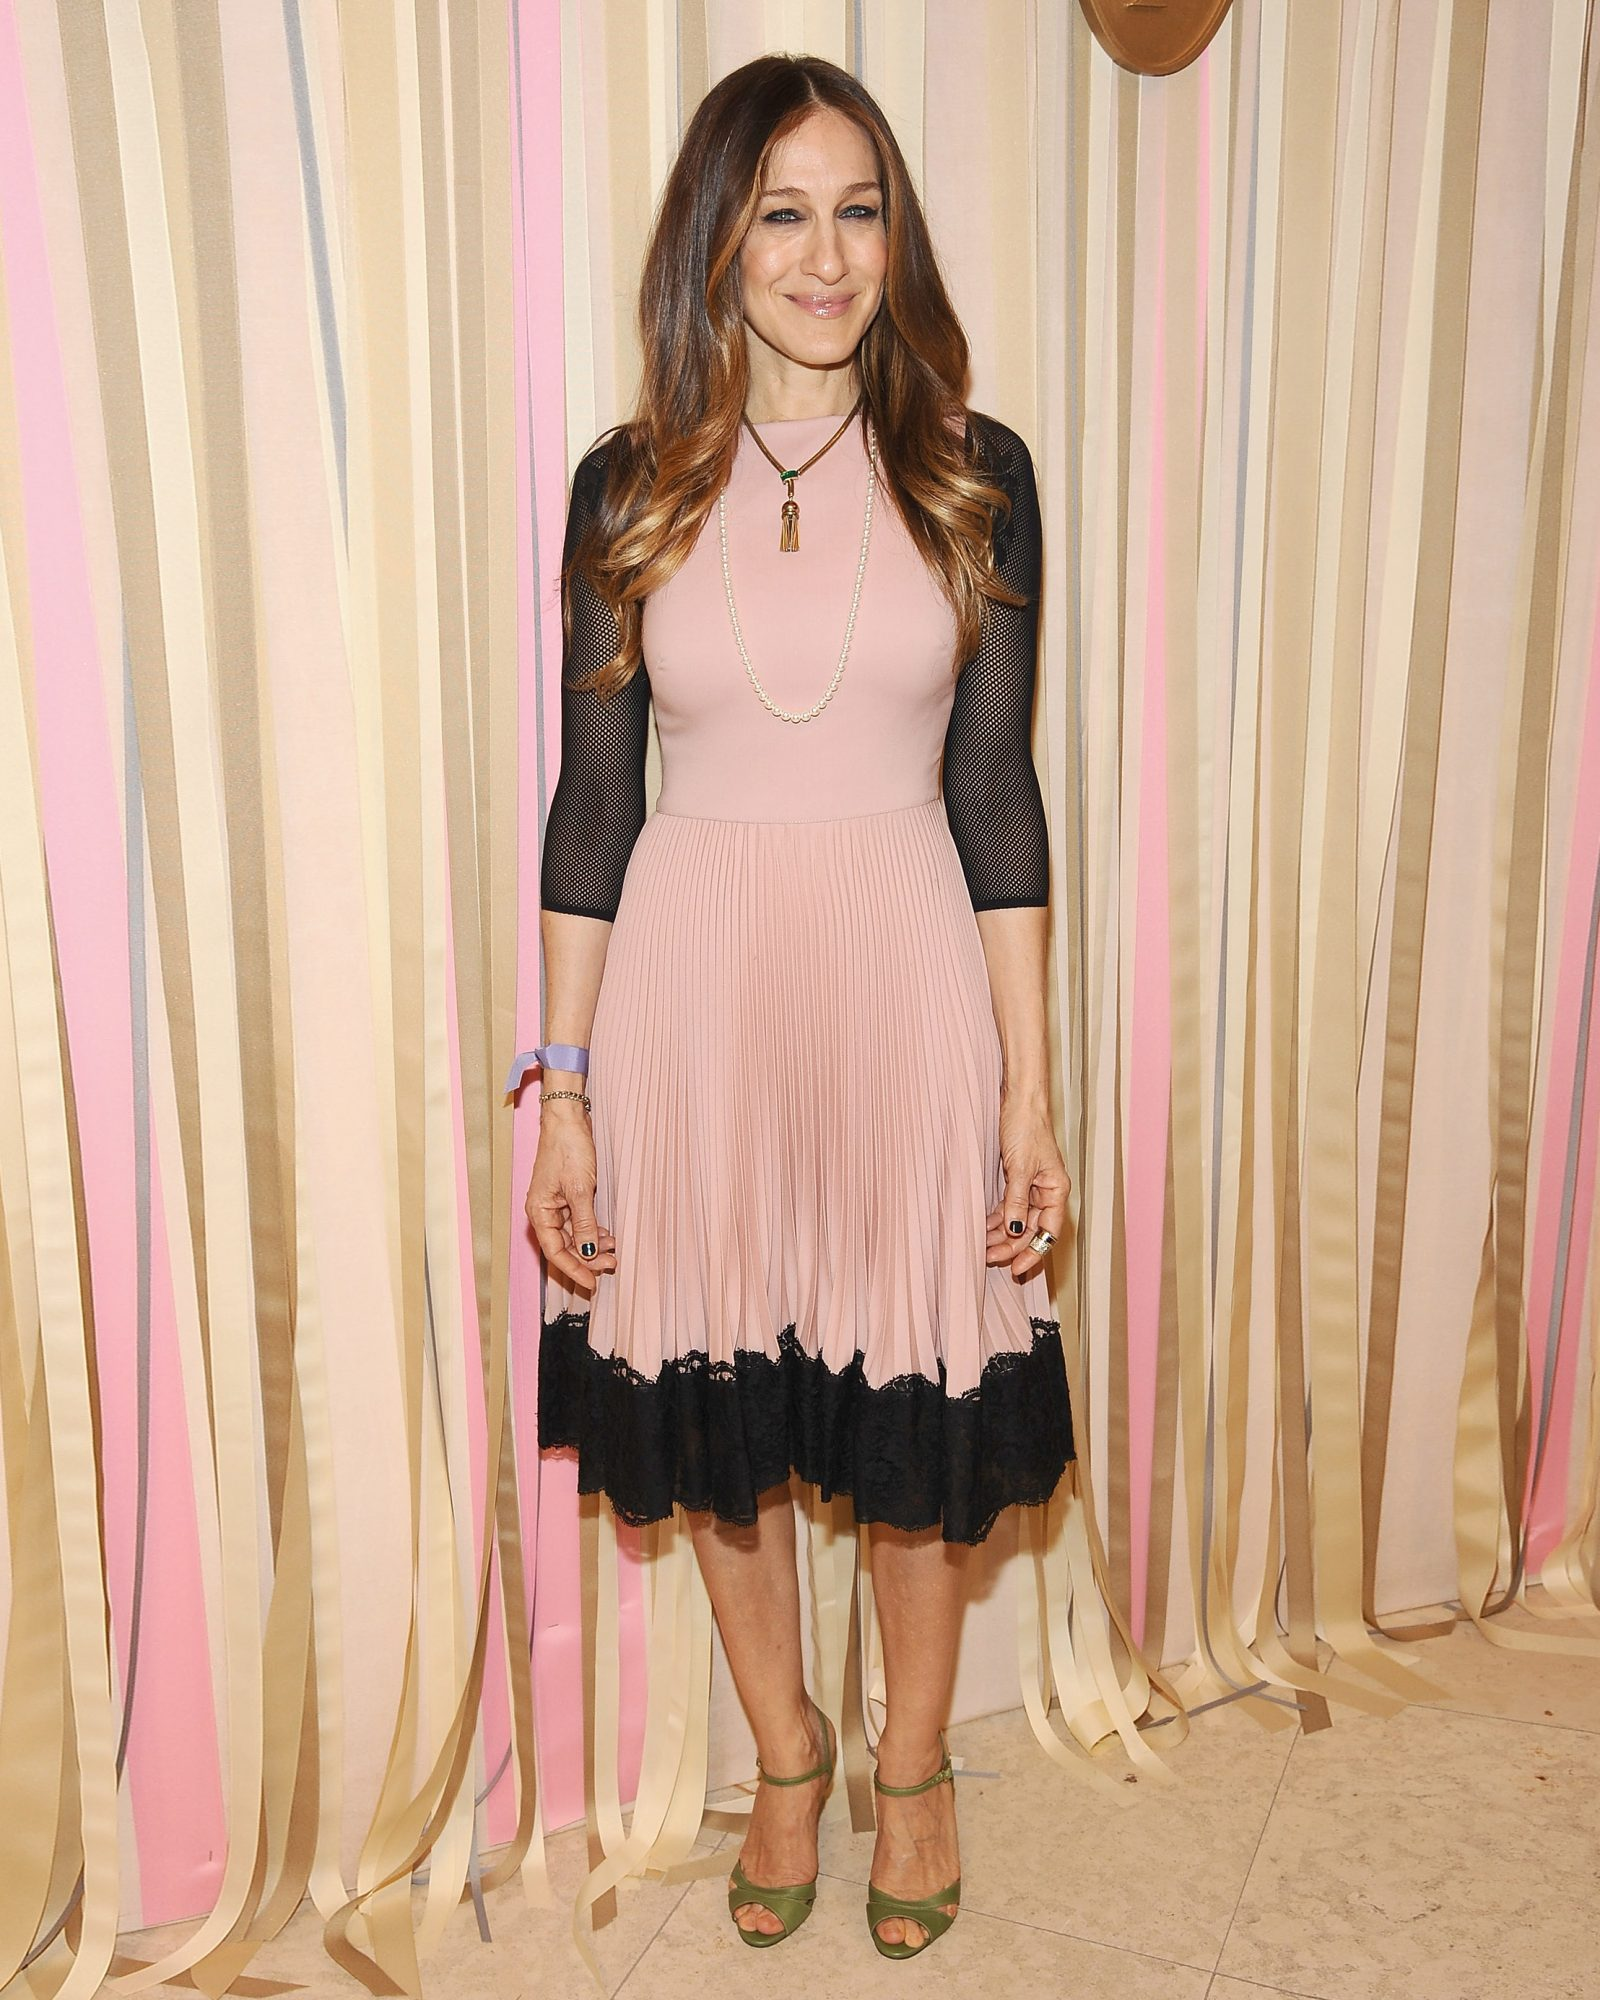 sjp-shoe-roundup-pop-up-show-opening-0515.jpg